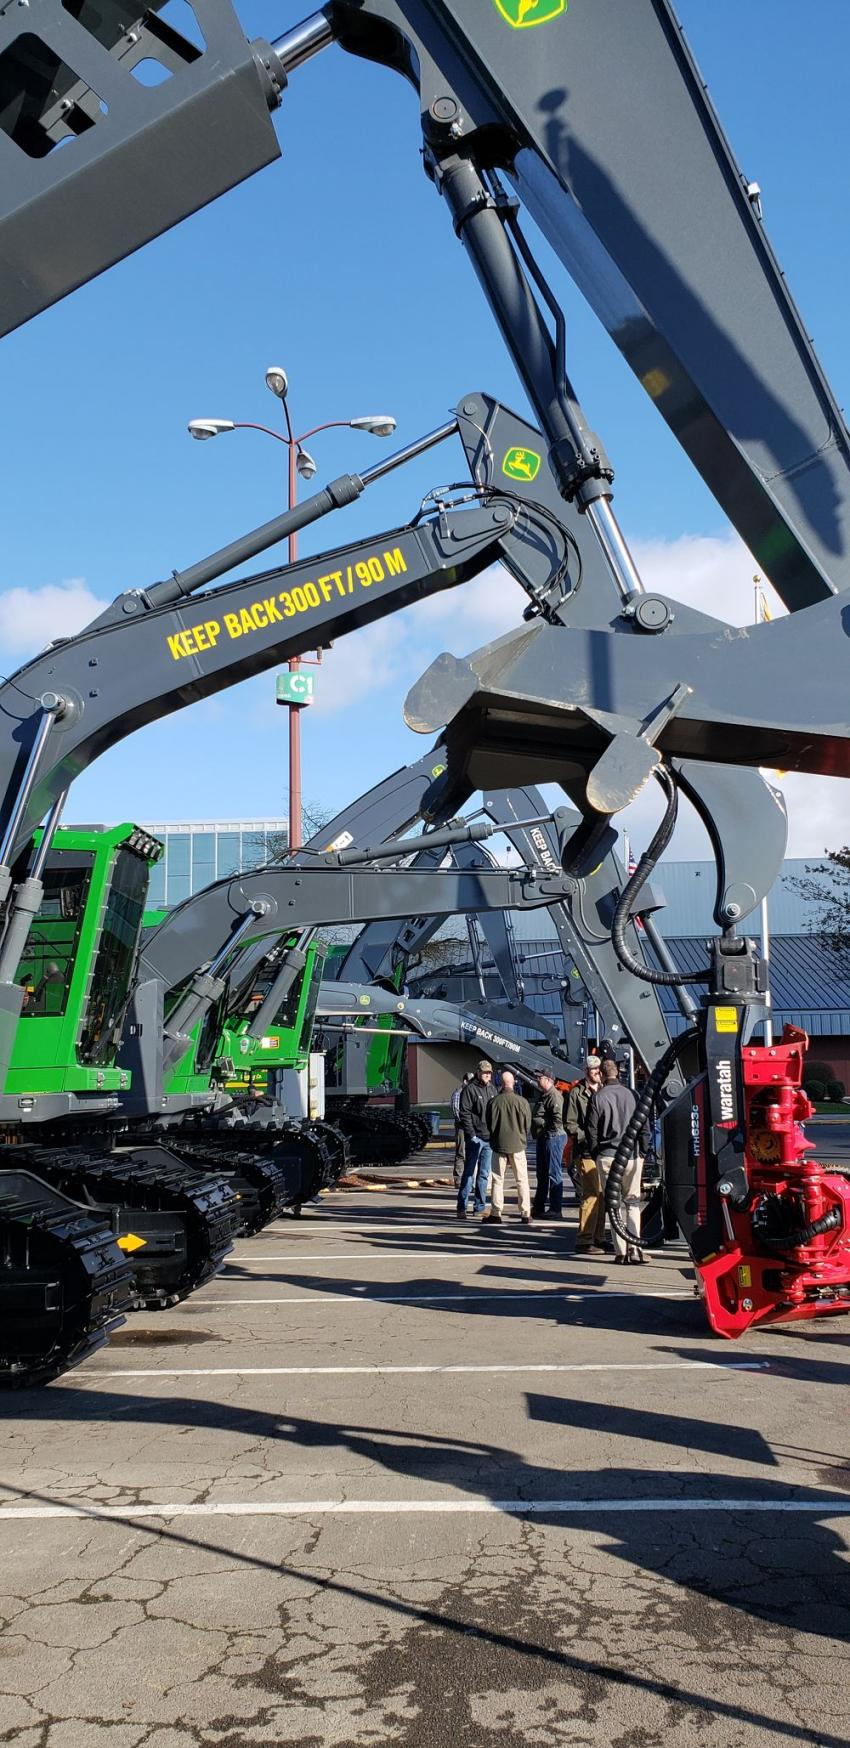 Pape Machinery brought its John Deere forestry equipment lineup to the show.